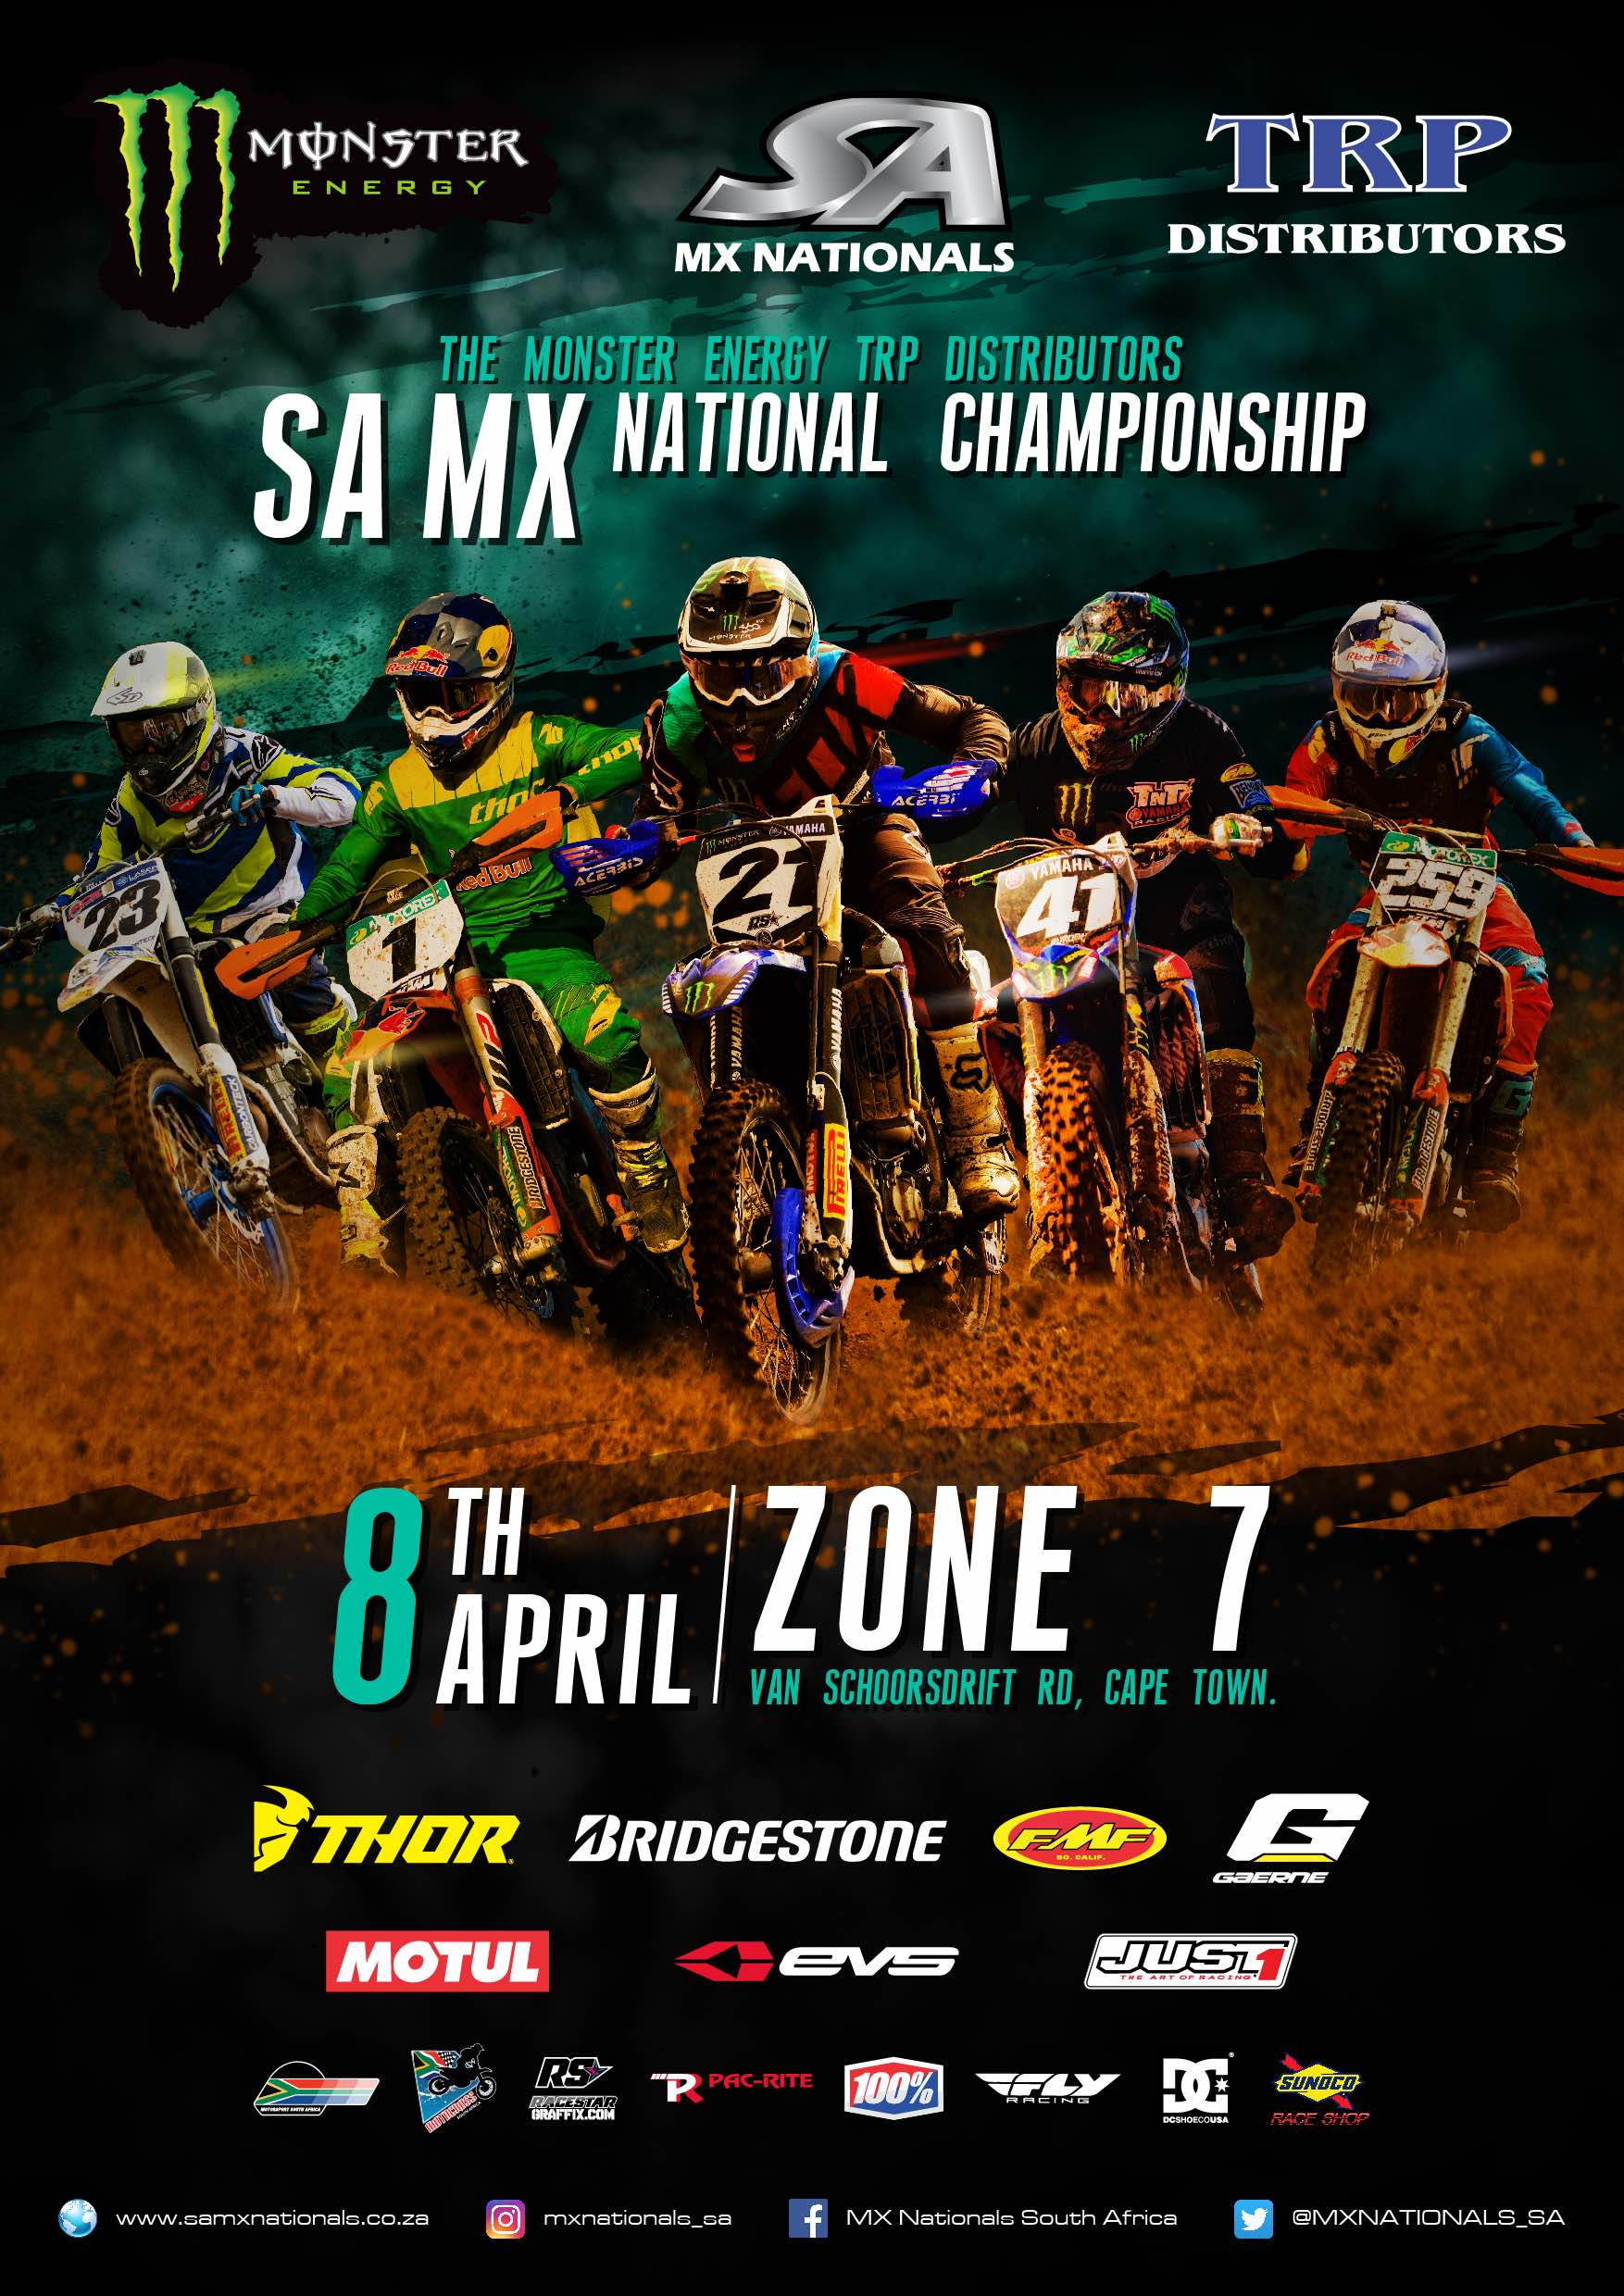 Details for Round 2 of the 2017 Monster Energy TRP Distributors SA National Motocross Championship